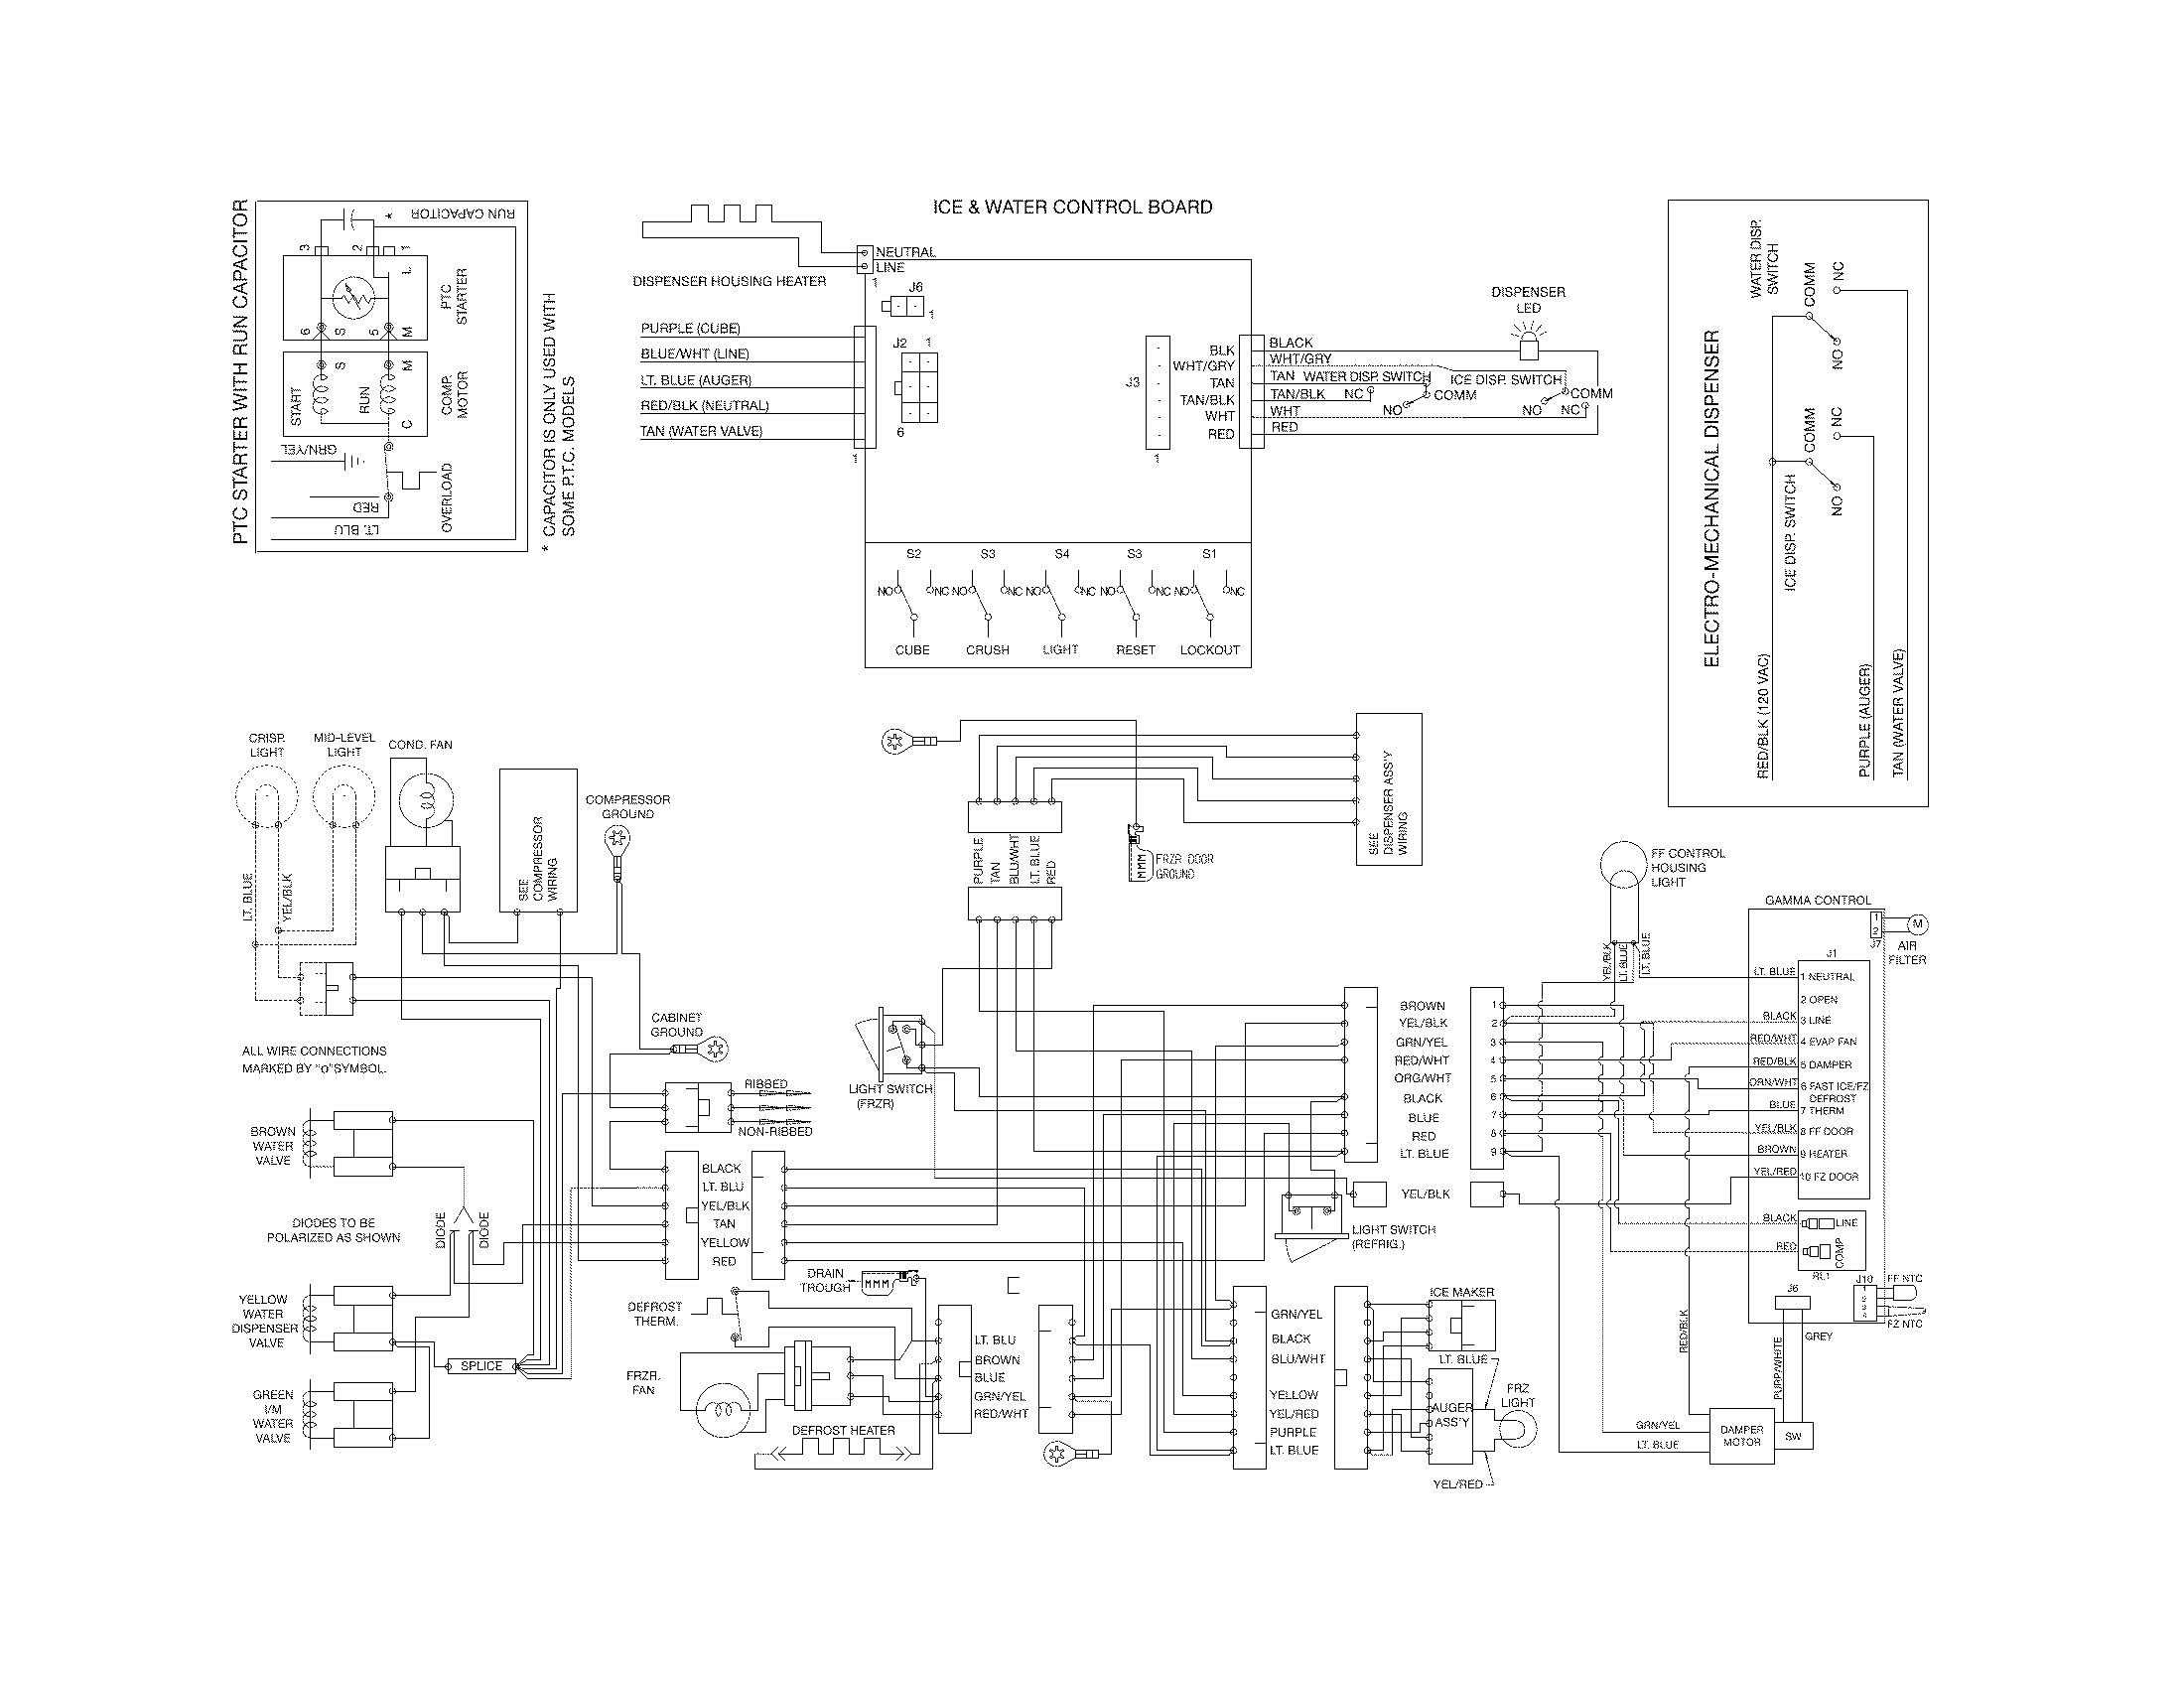 Wiring Diagram For Frigidaire Dishwasher Model Lfbd2409lwob Block Refrigerator Dryer Parts Free Download Rh Xwiaw Us Stove